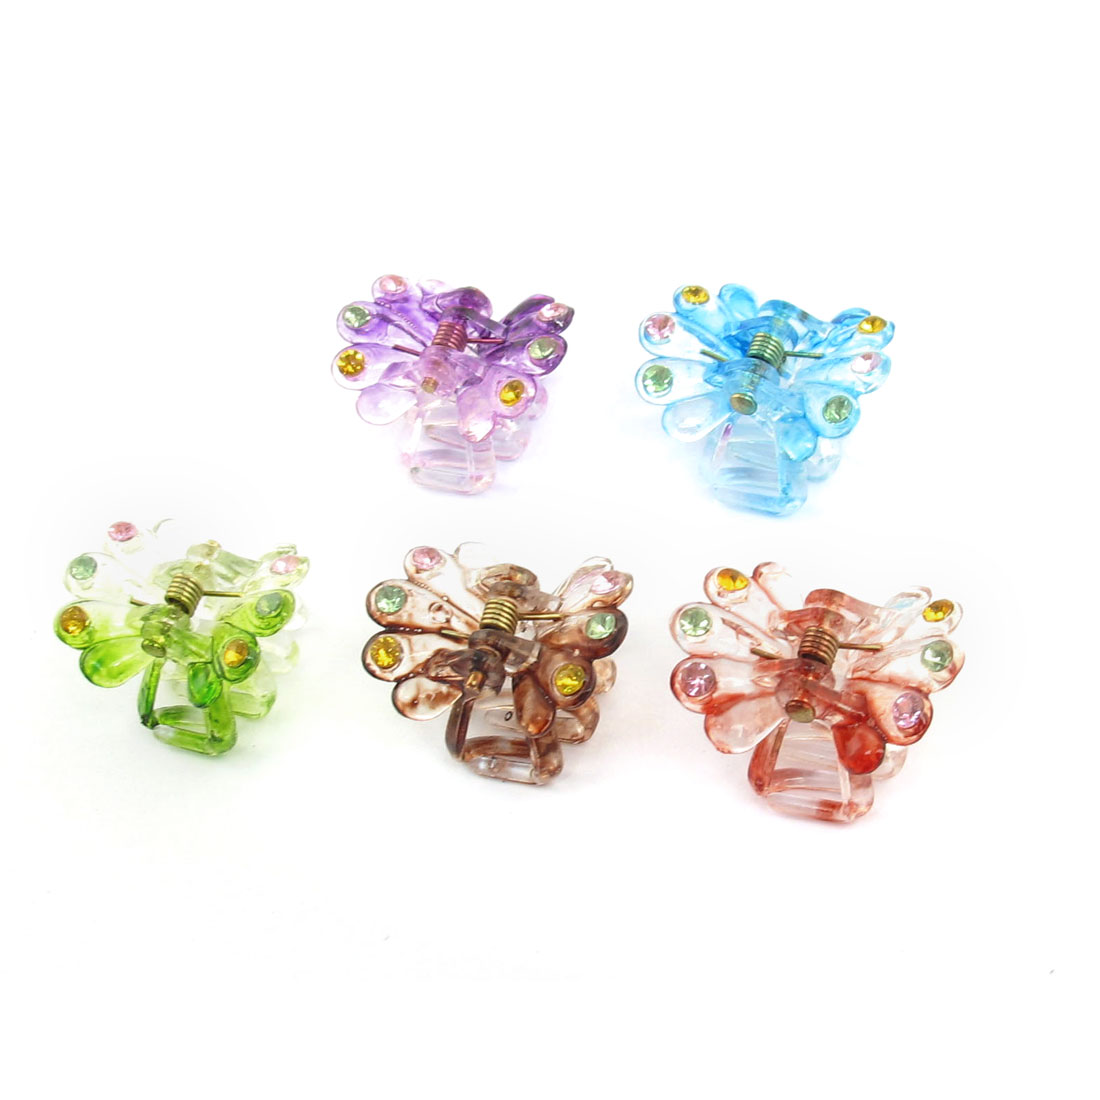 Lady Hairstyle Plastic Spring Loaded Hair Snap Claw Clip Clamp Hairclip 5pcs Assorted Color